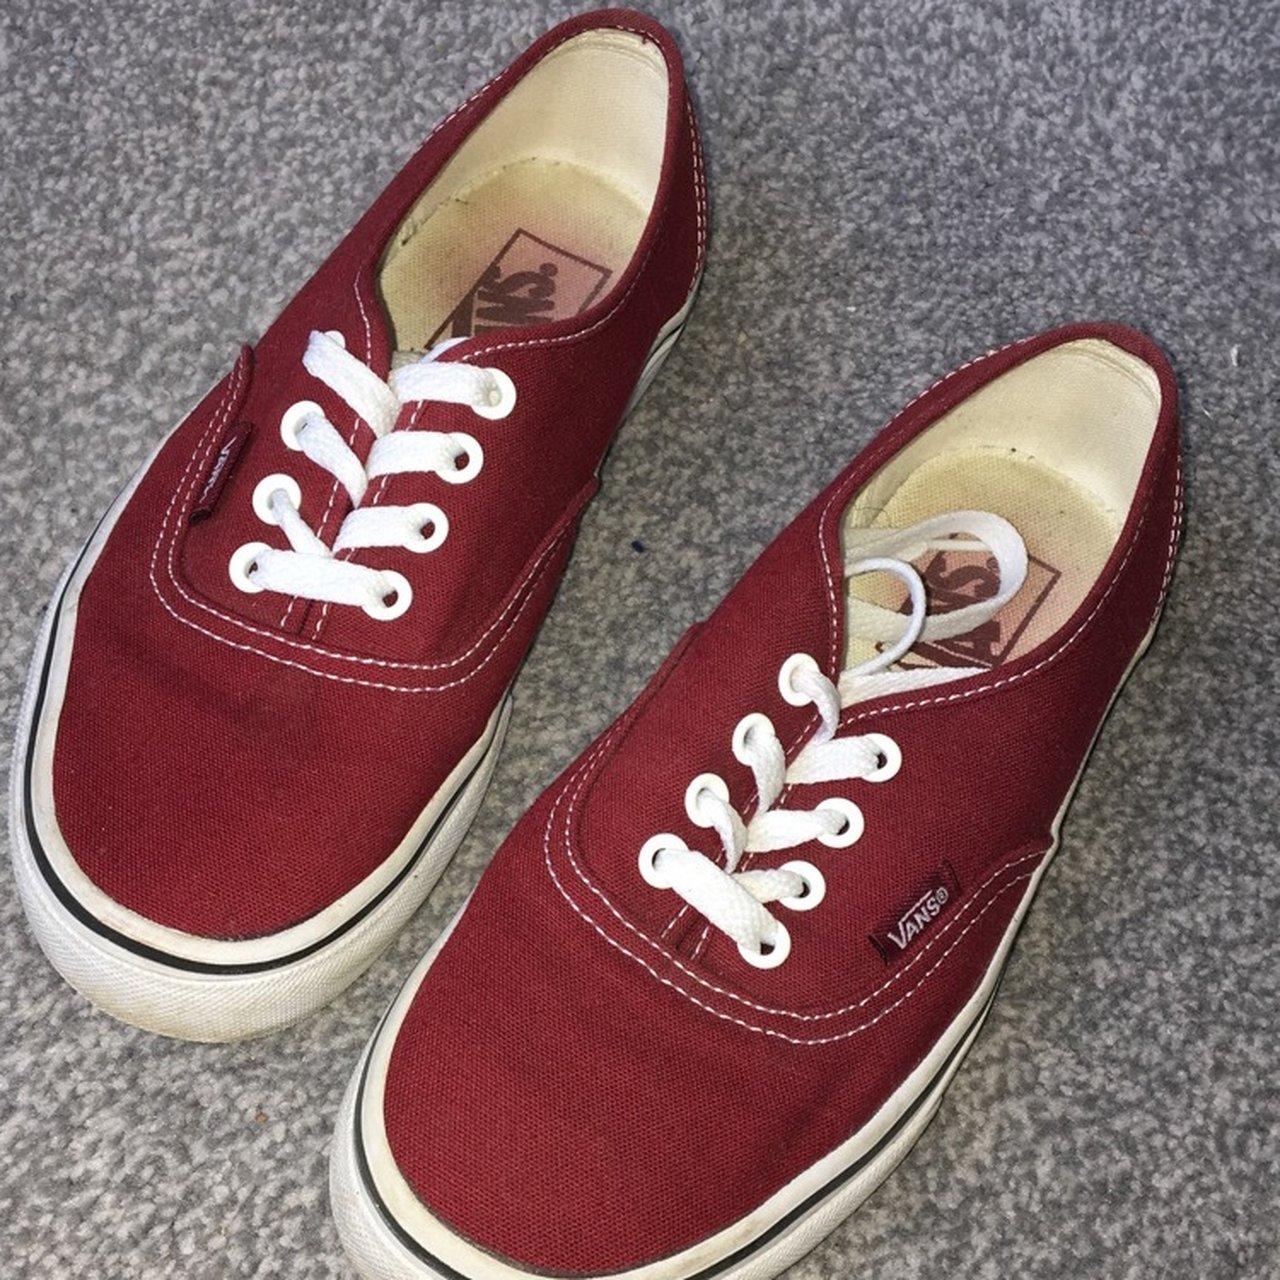 7c37833c9a12 Burgundy vans UK size 4. Worn condition